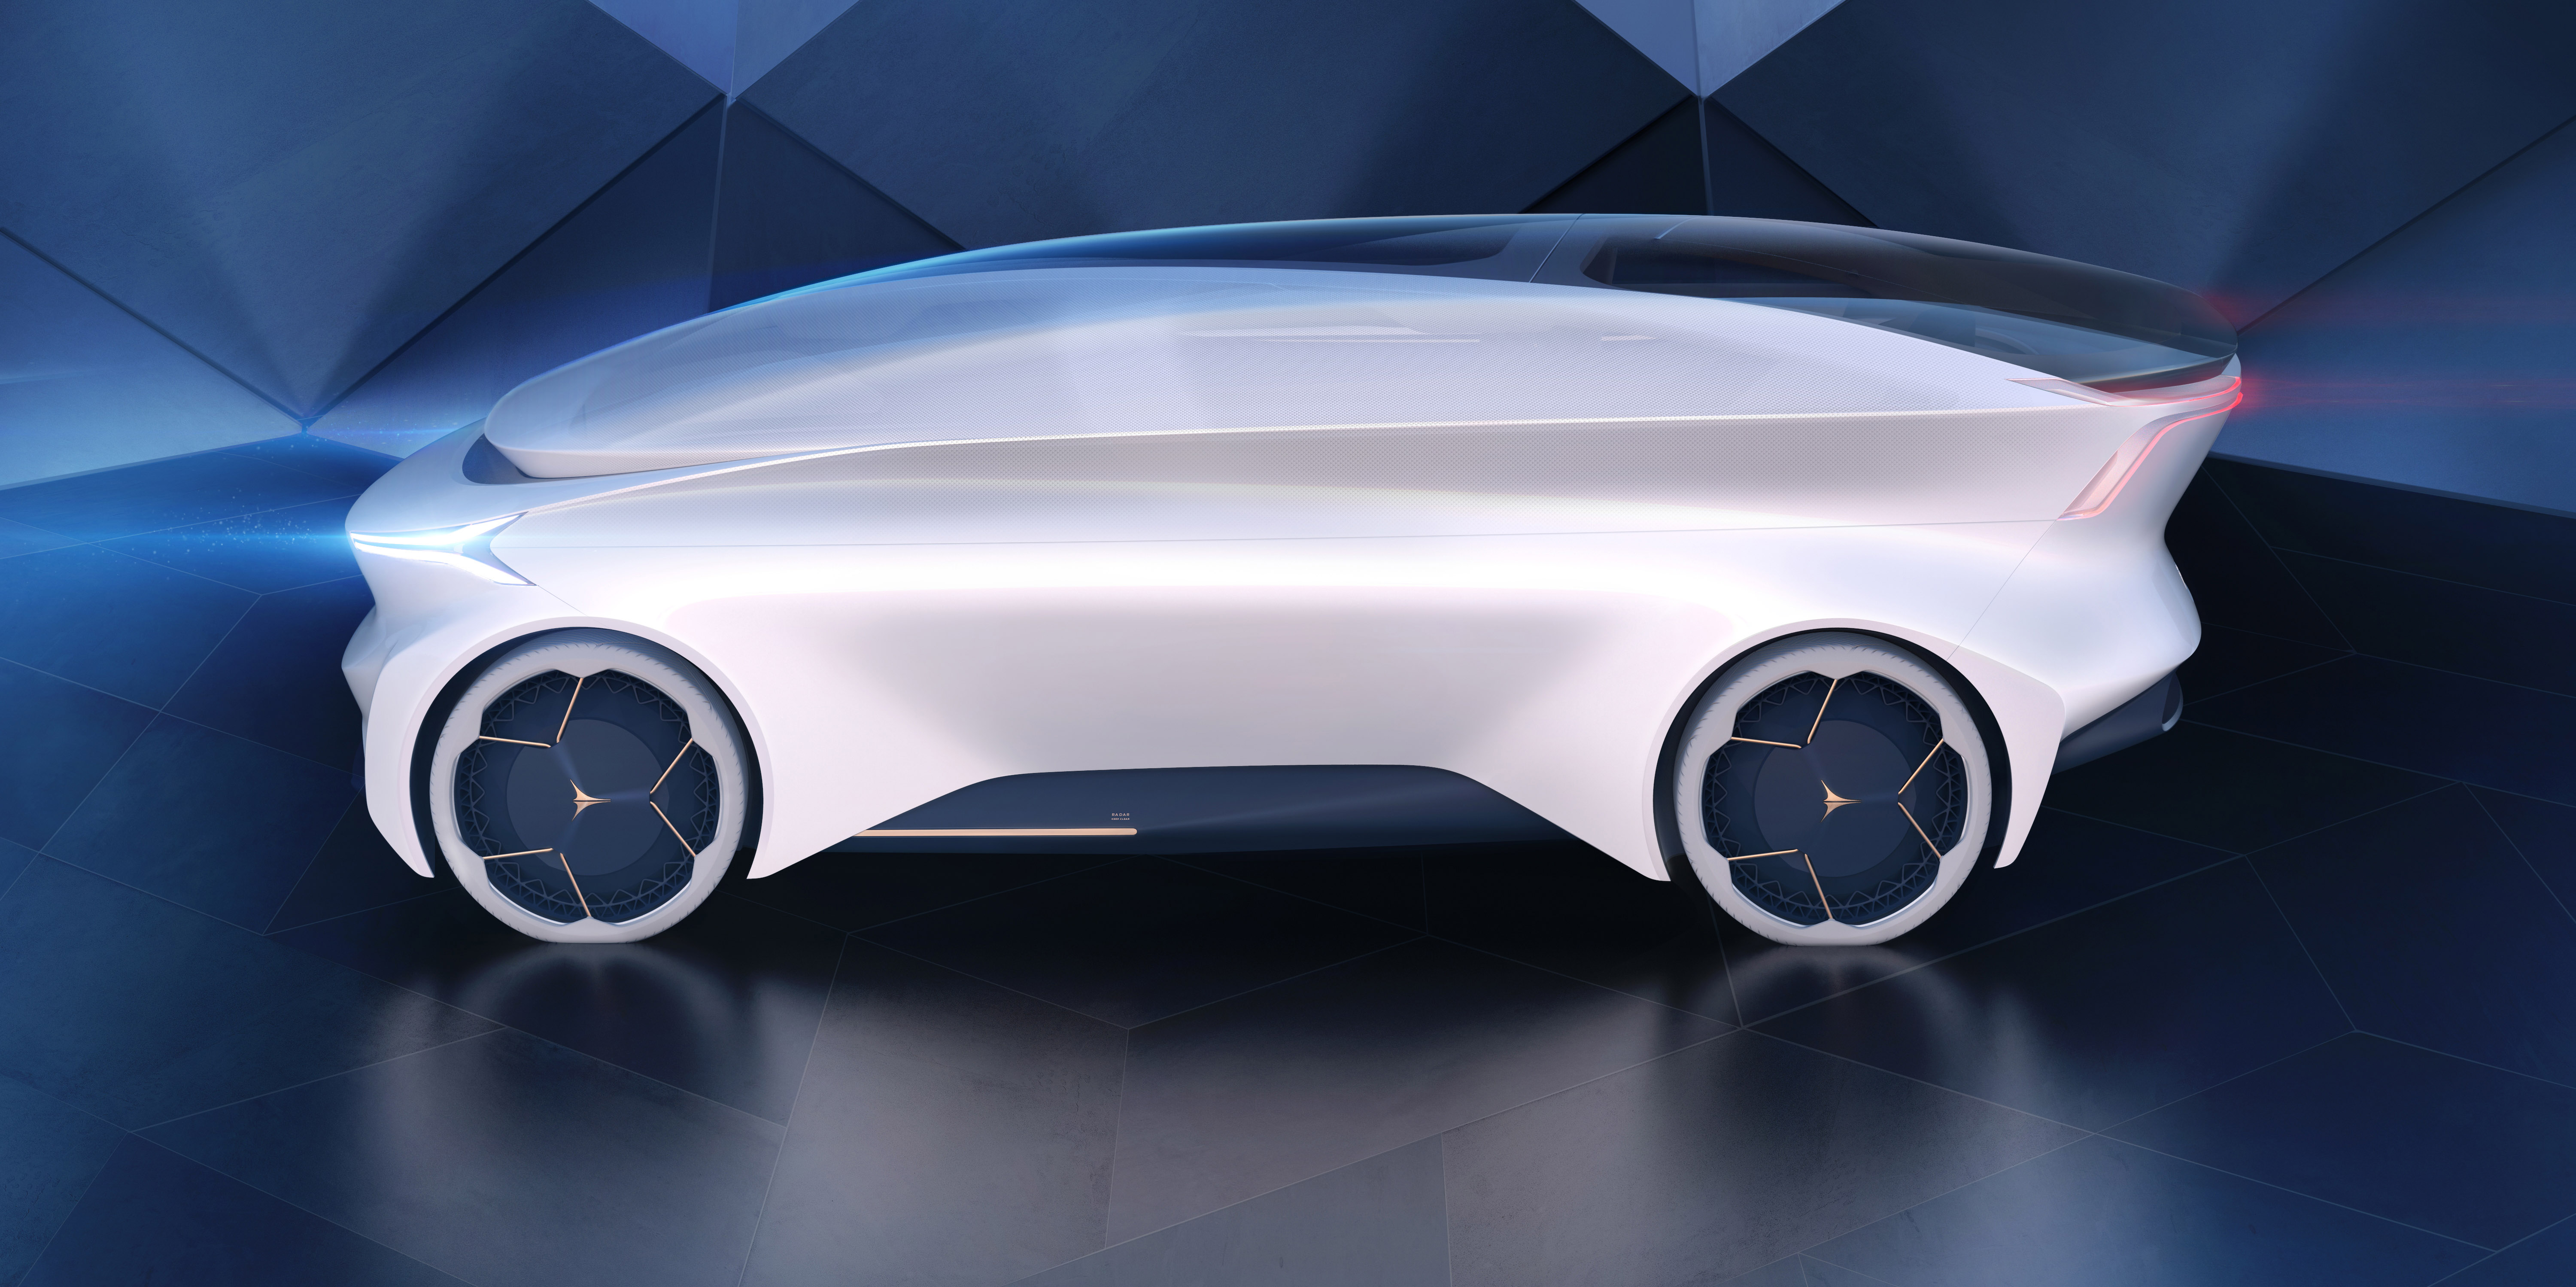 Another Self Driving Car Meet The Icona Nucleus Pictures